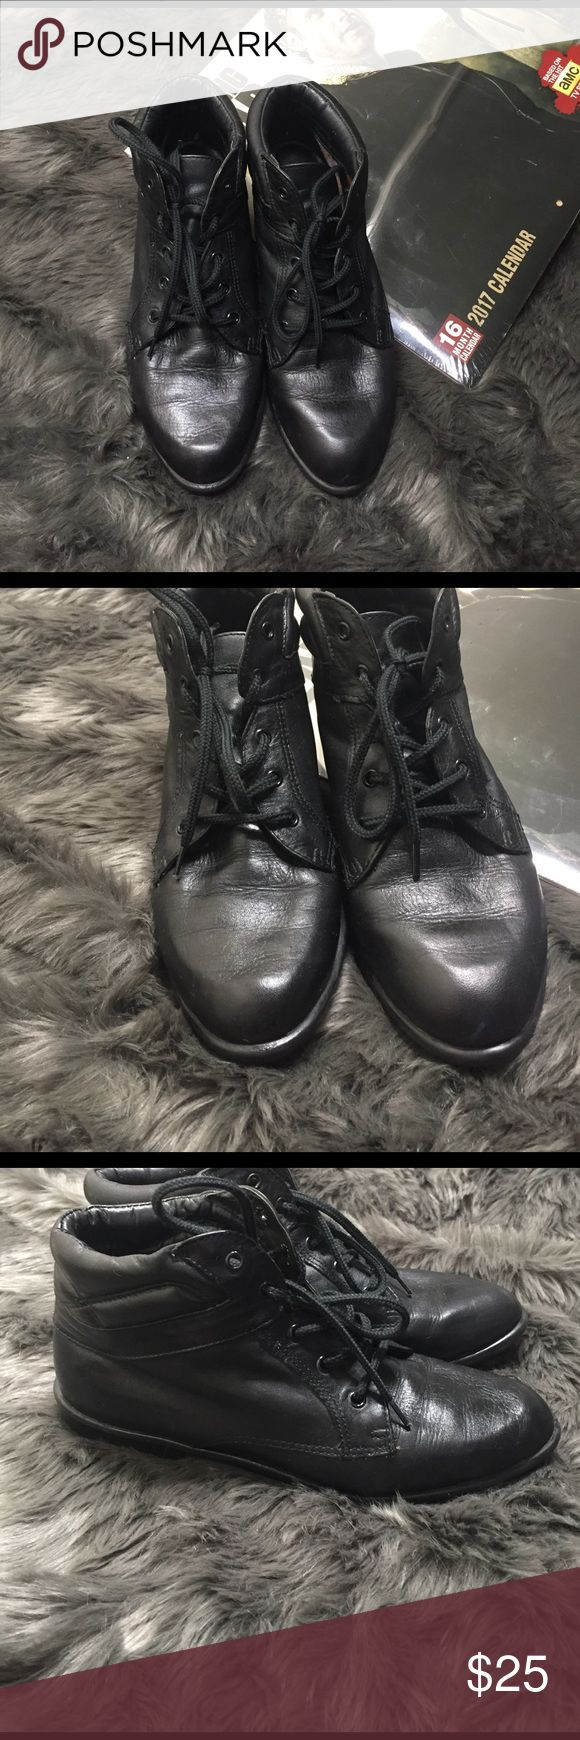 Used Boston Accent black  booties size 6 1/2W Boots used but in good condition. The photos are part of the description look in detail. Made in Brazil/Leather upper. Size 61/2W Boston Accent  Shoes Ankle Boots & Booties